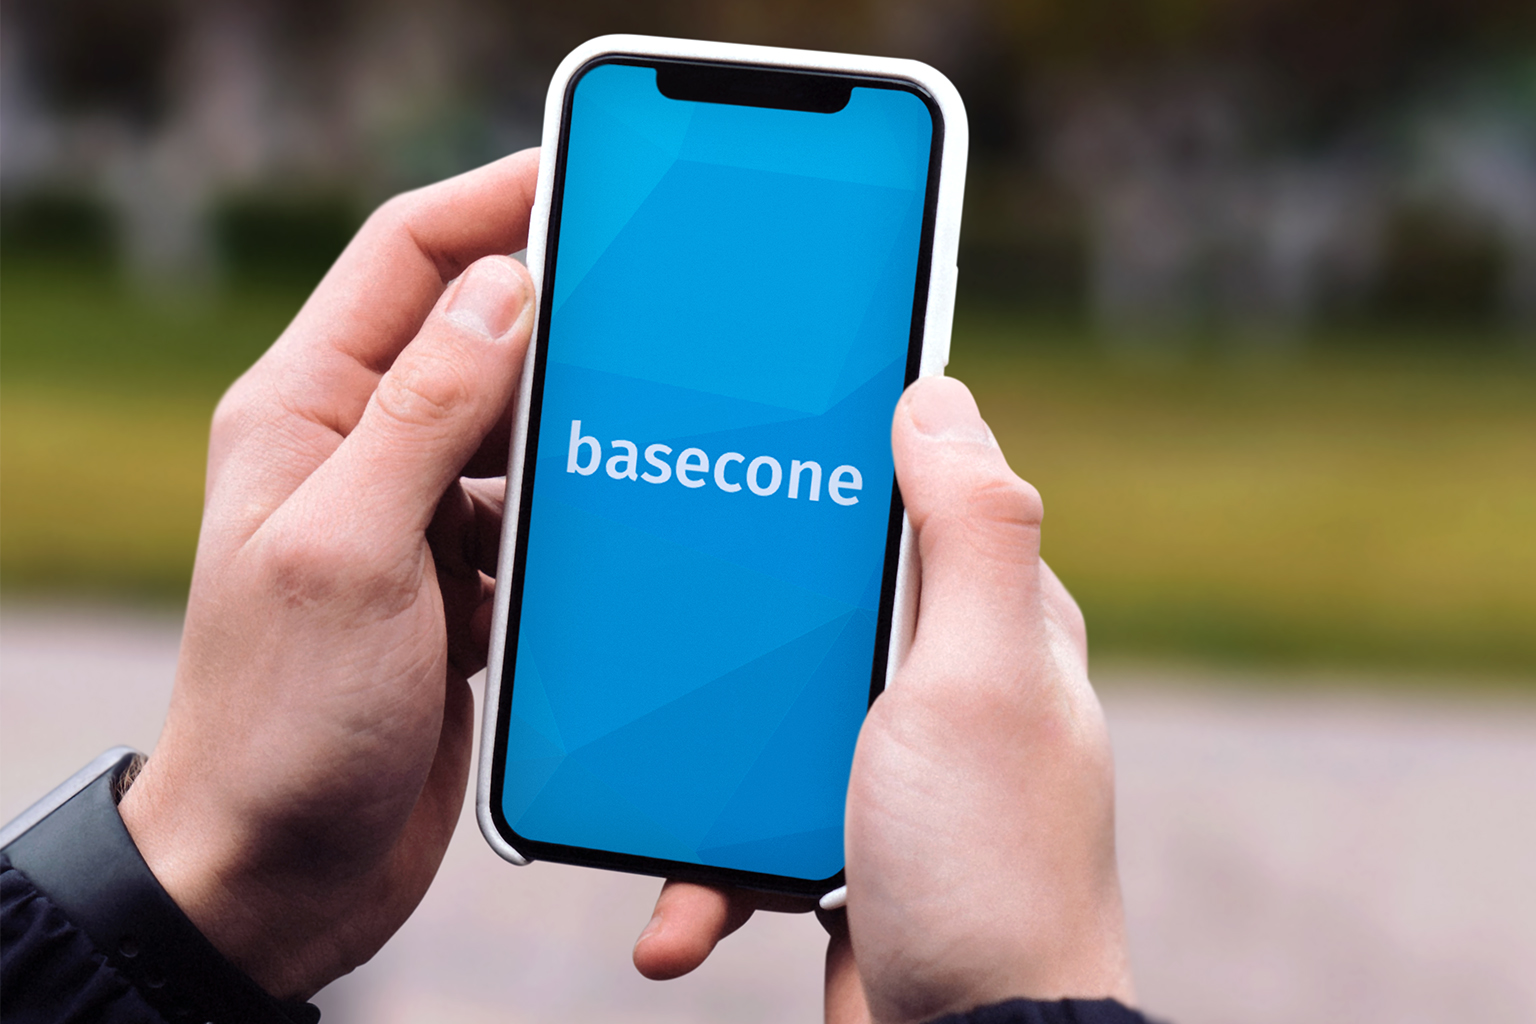 the Basecone app